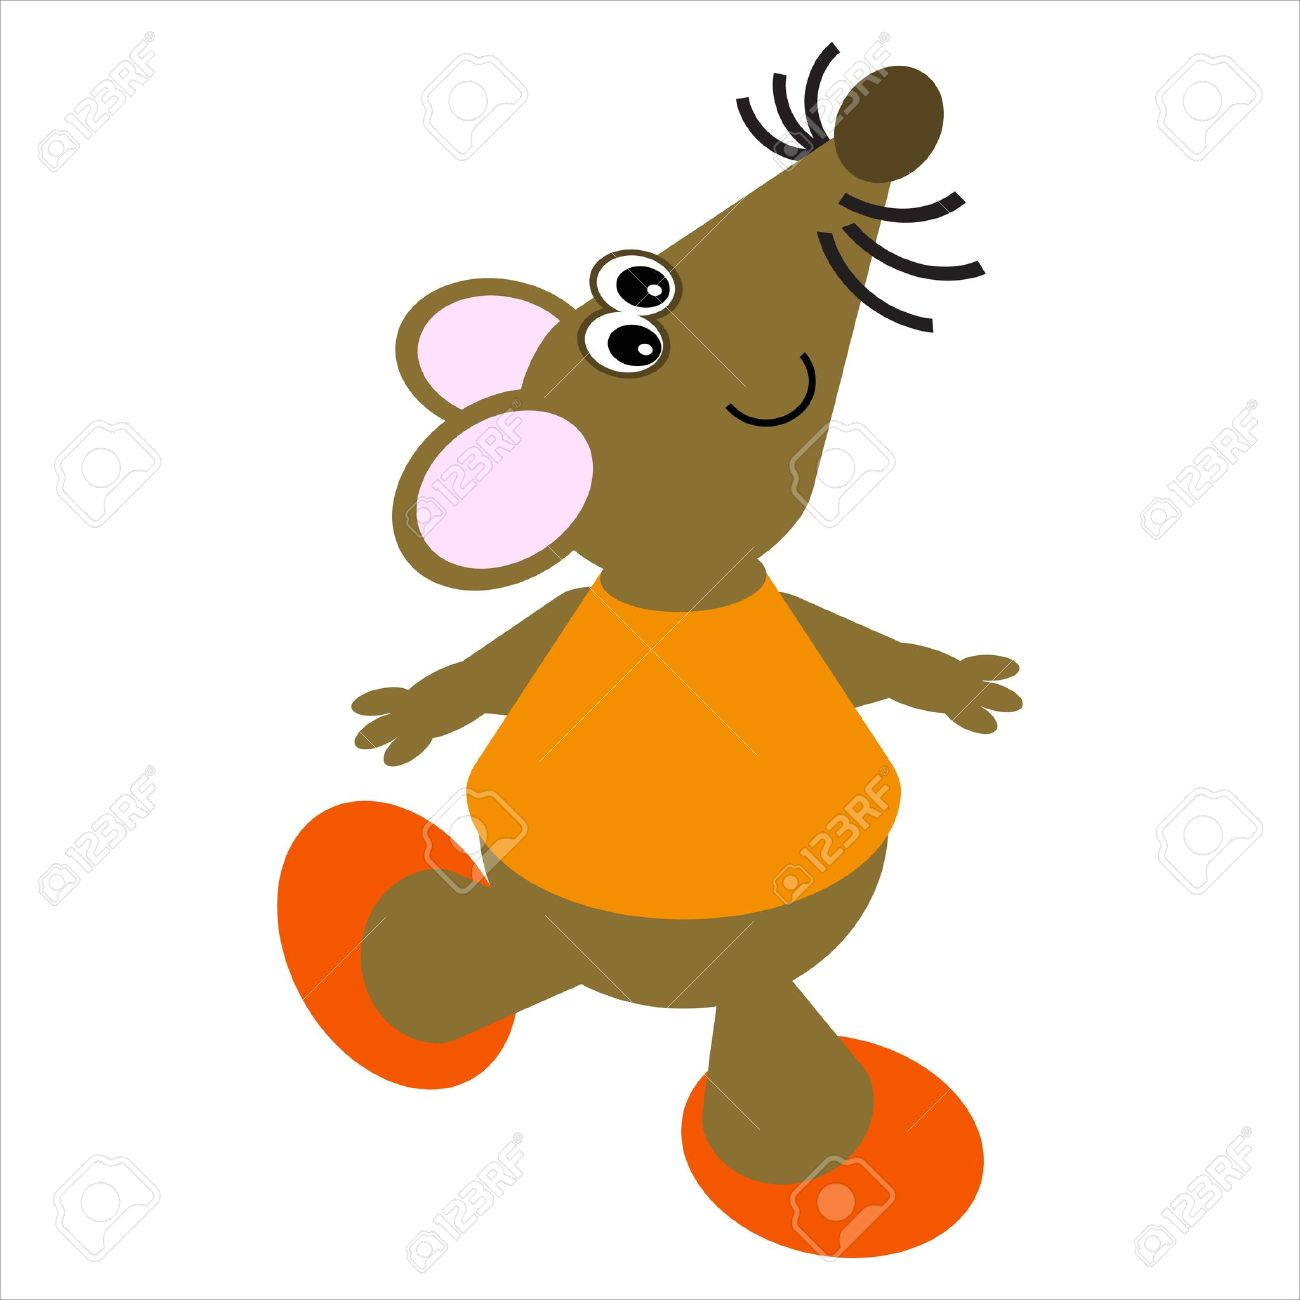 Cartoon of a happy, dancing mouse Stock Photo - 4998181